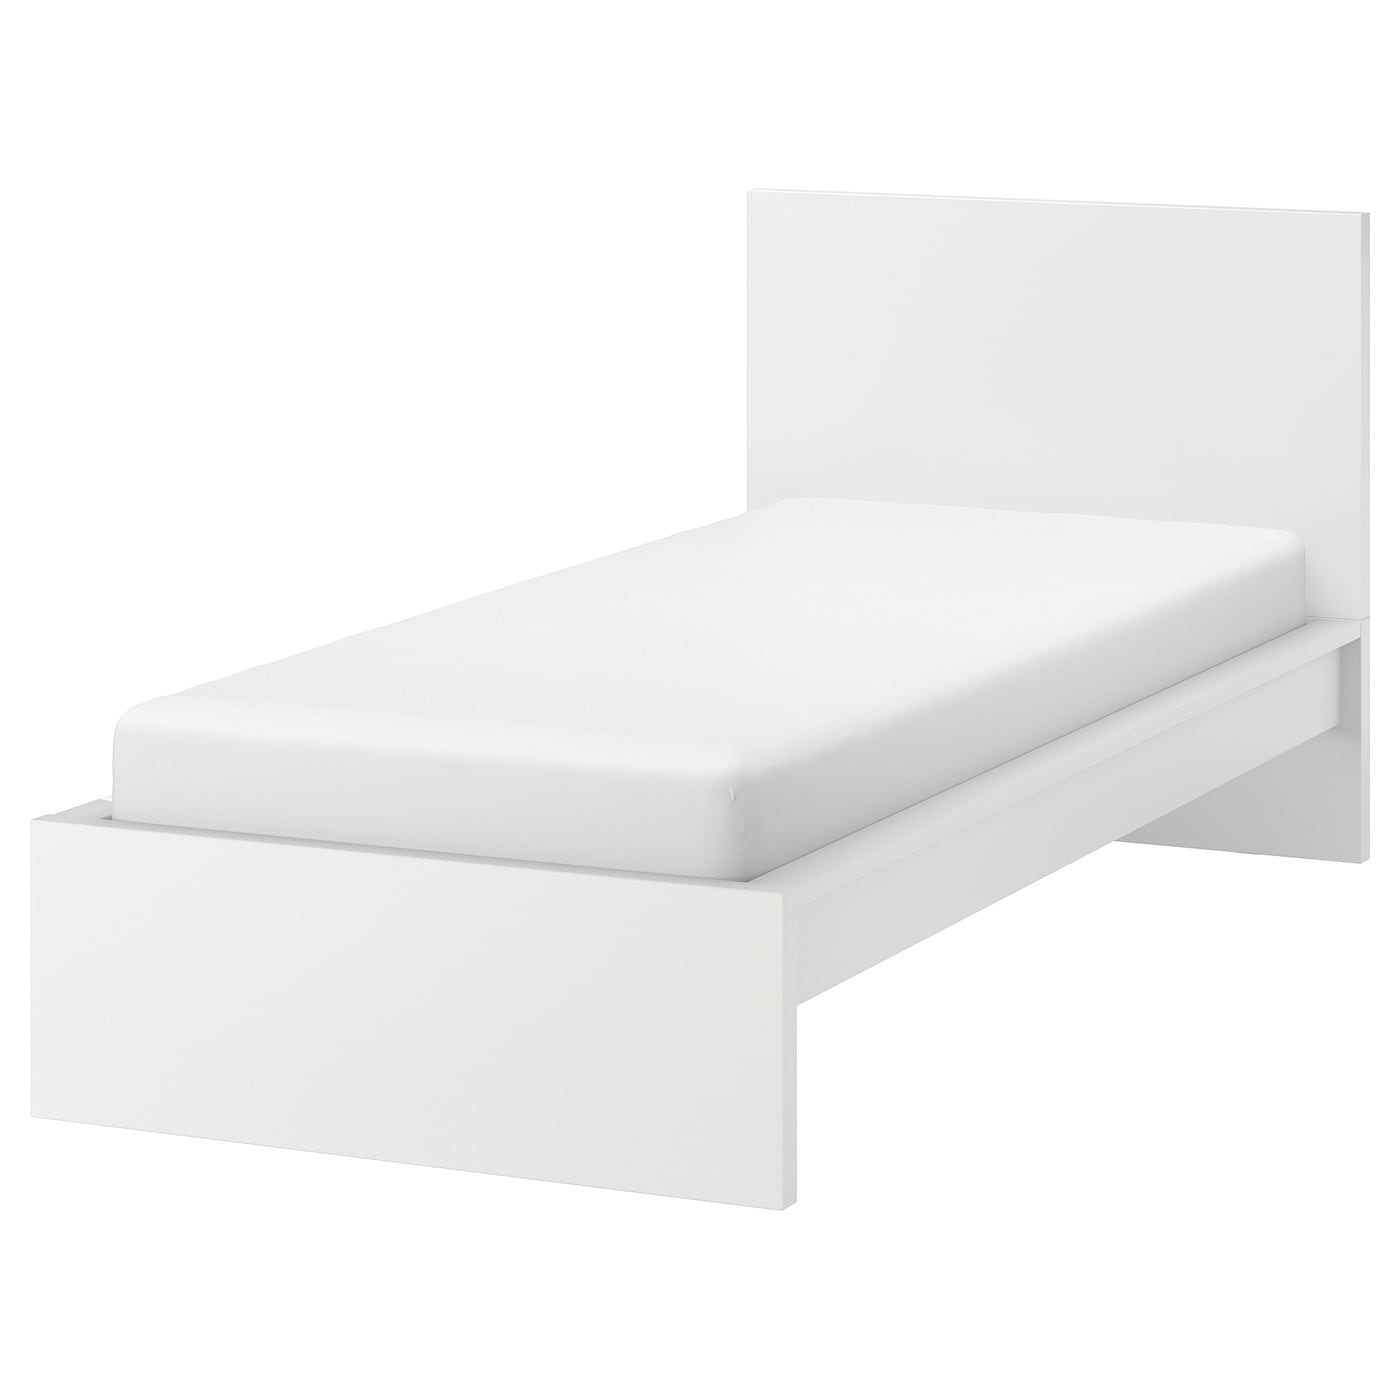 IKEA MALM bed frame, high Adjustable bed sides allow you to use mattresses of different thicknesses.